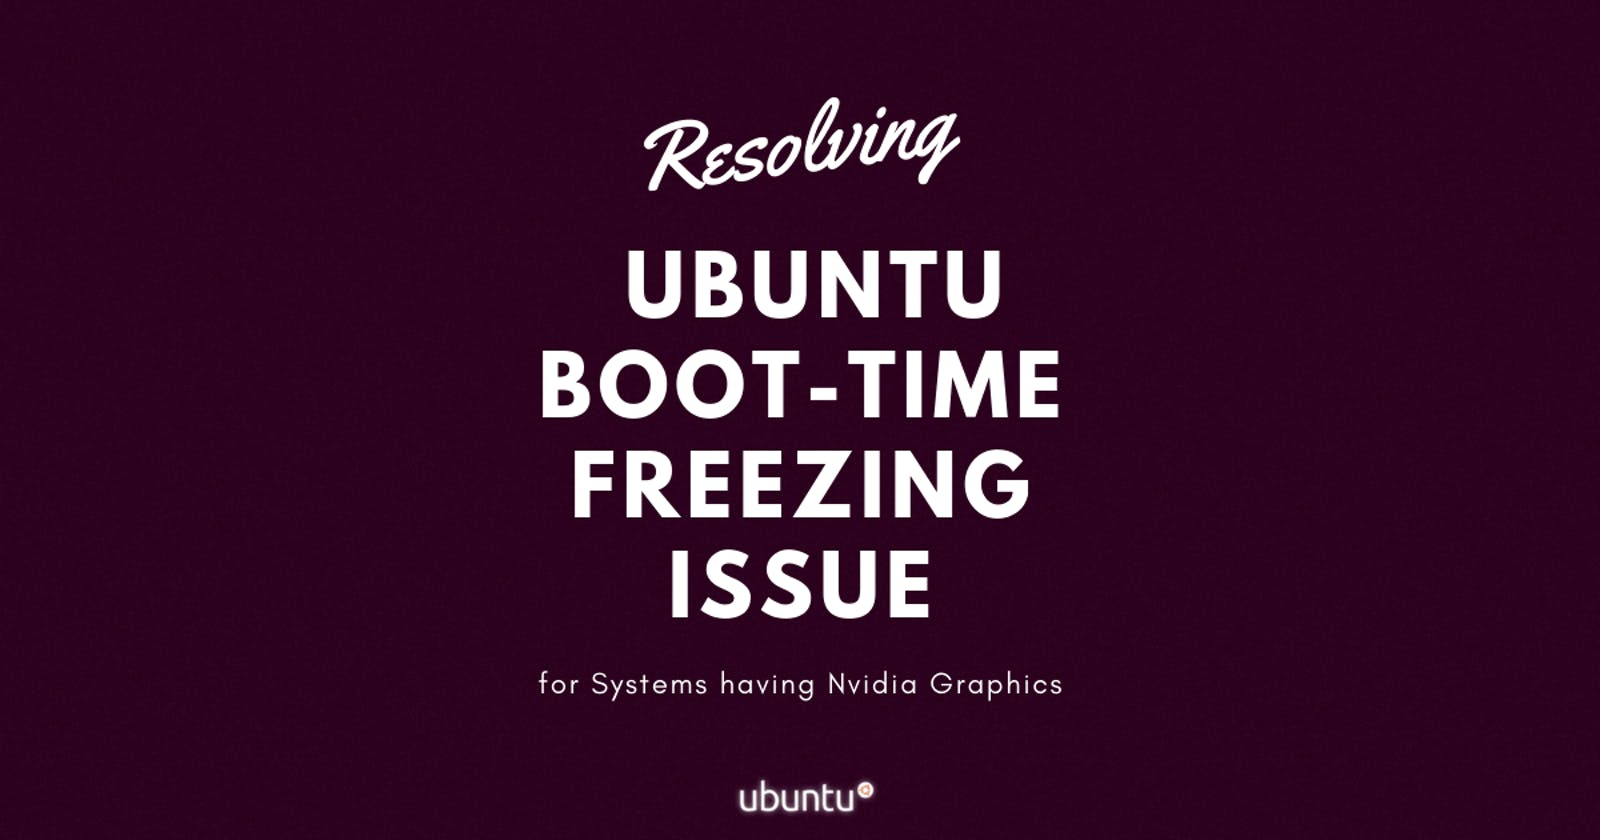 Resolving Ubuntu Boot-Time Freezing Issue(for Systems having Nvidia Graphics)